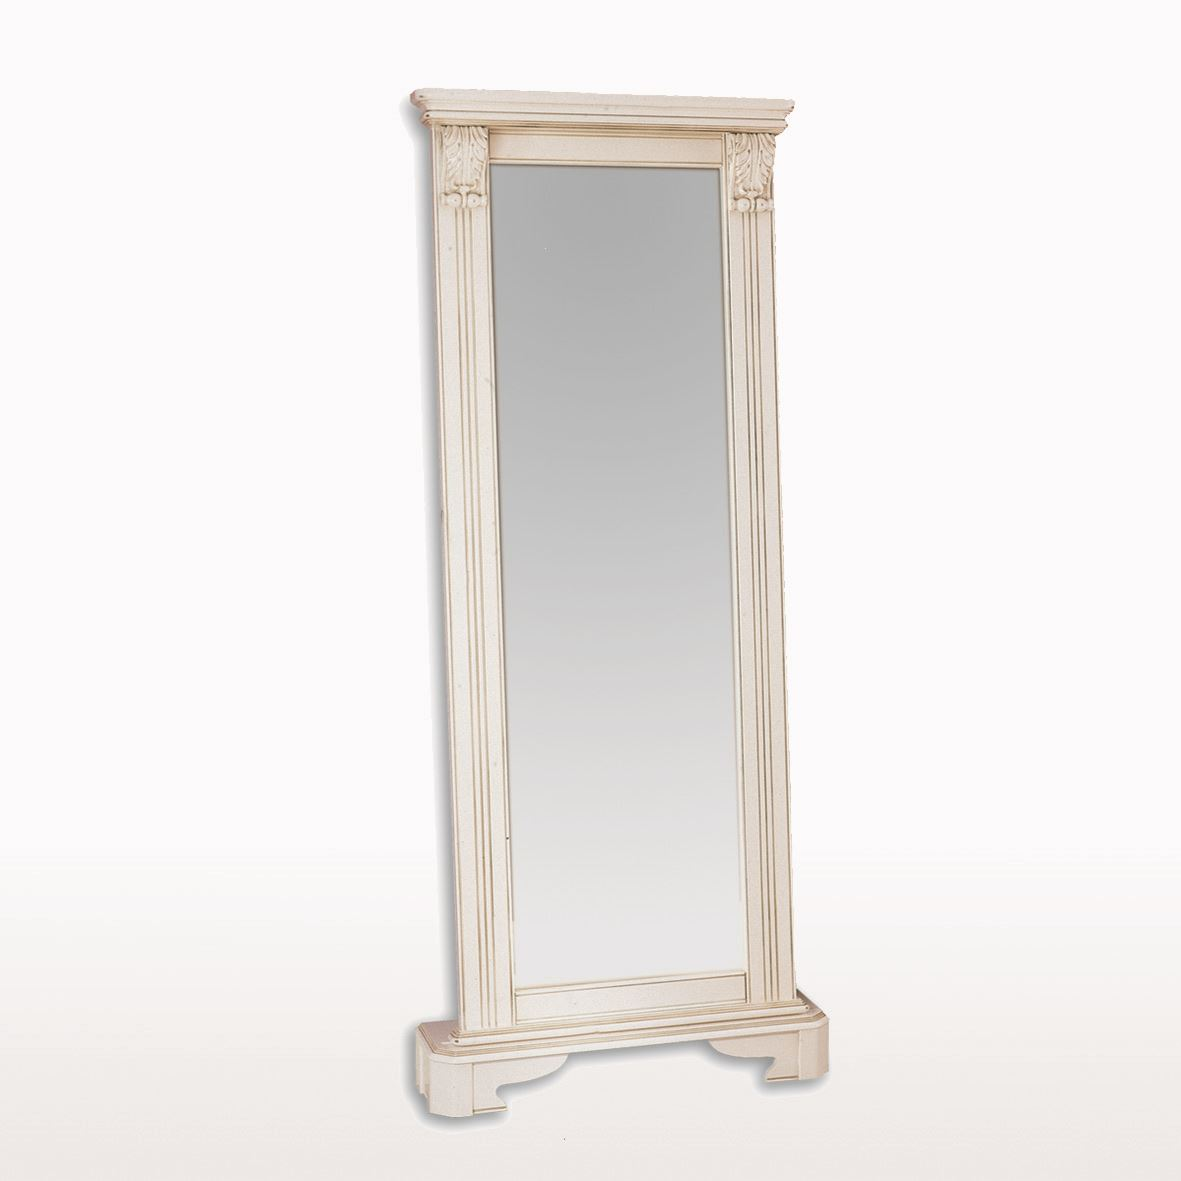 Amore' - Cheval Dressing Mirror and Stand - ABJ414